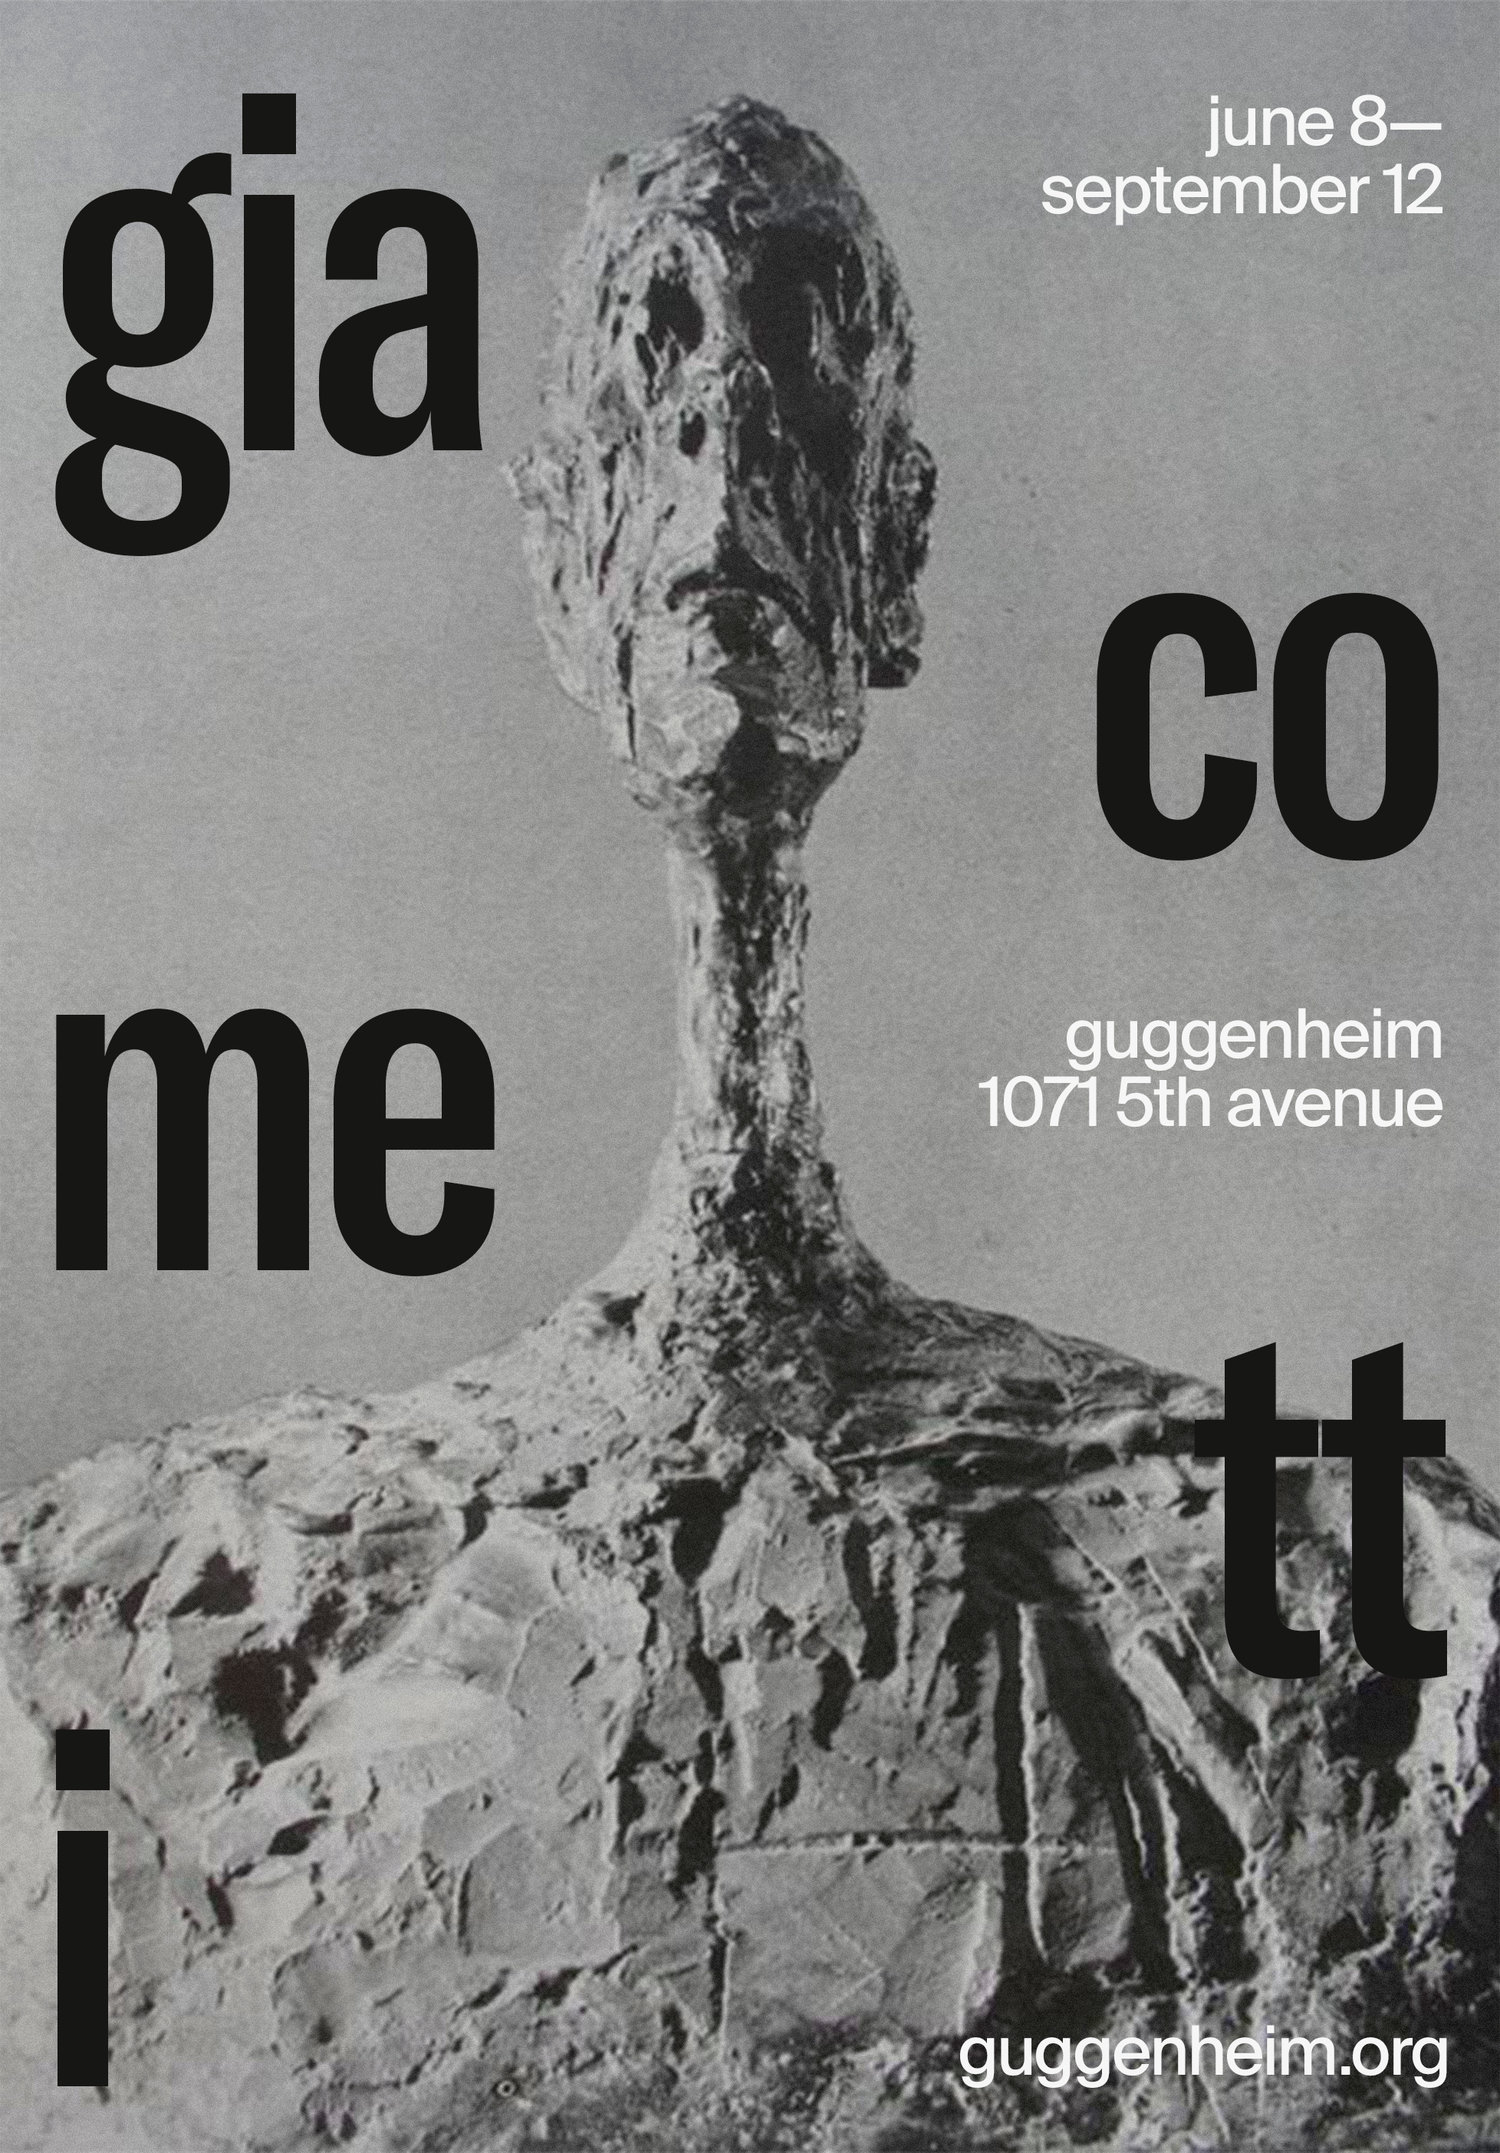 giacometti+poster+updated.jpg